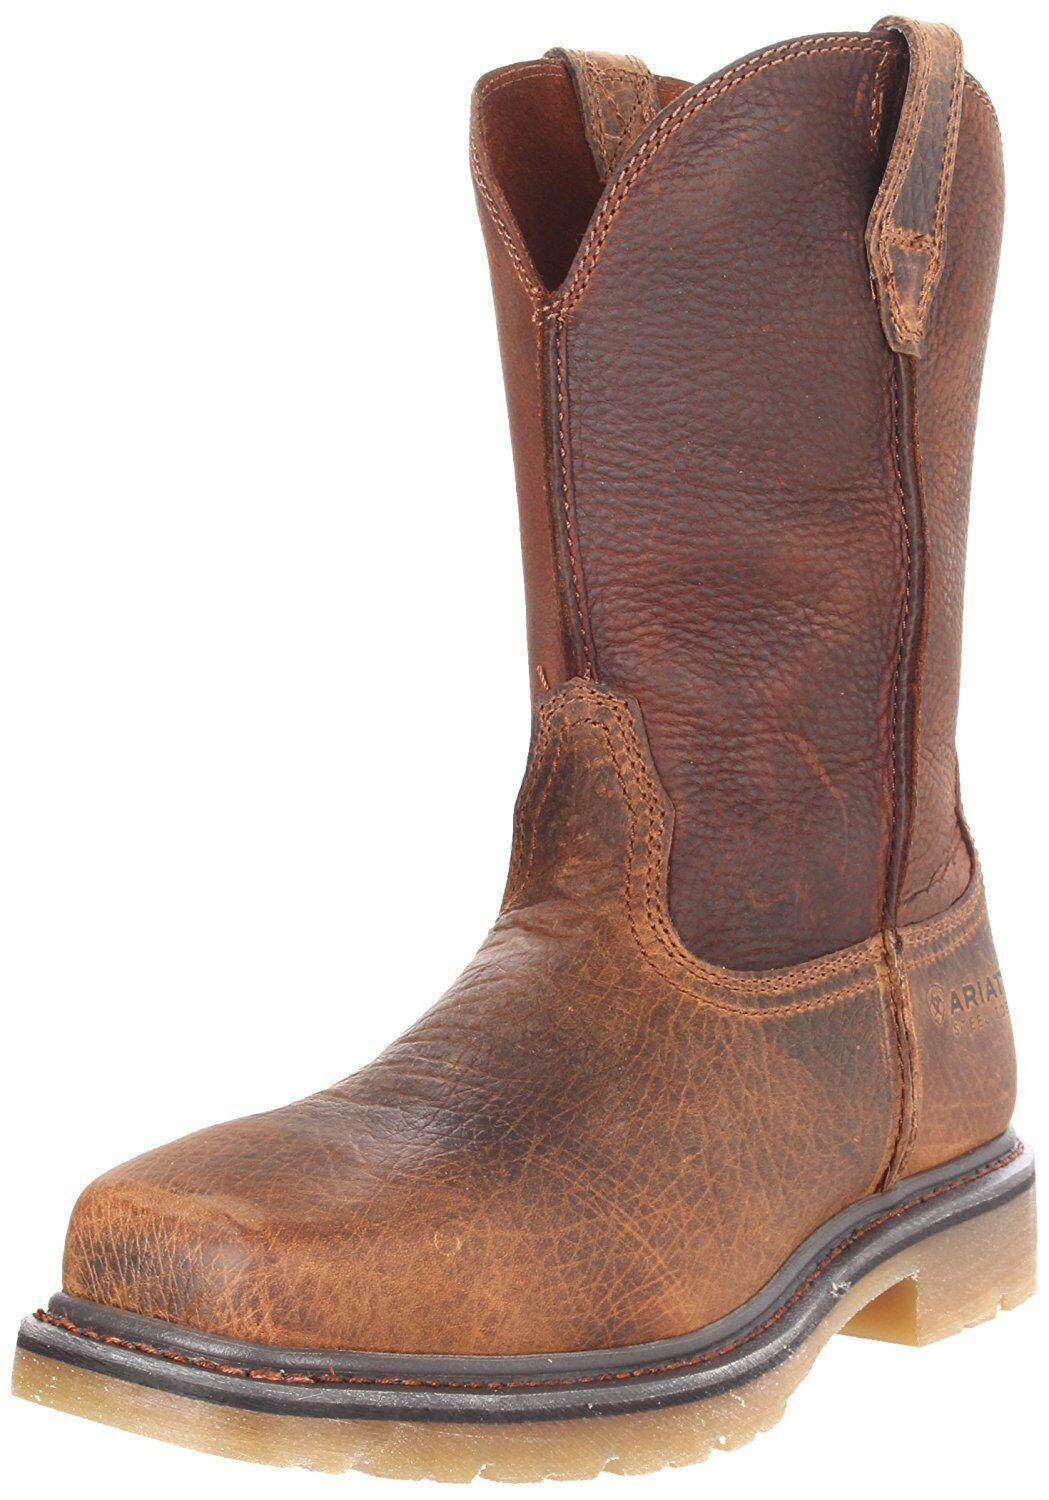 Ariat Mens Rambler Pull-on Steel Toe Work Boot, Earth Brown, 8 2E US